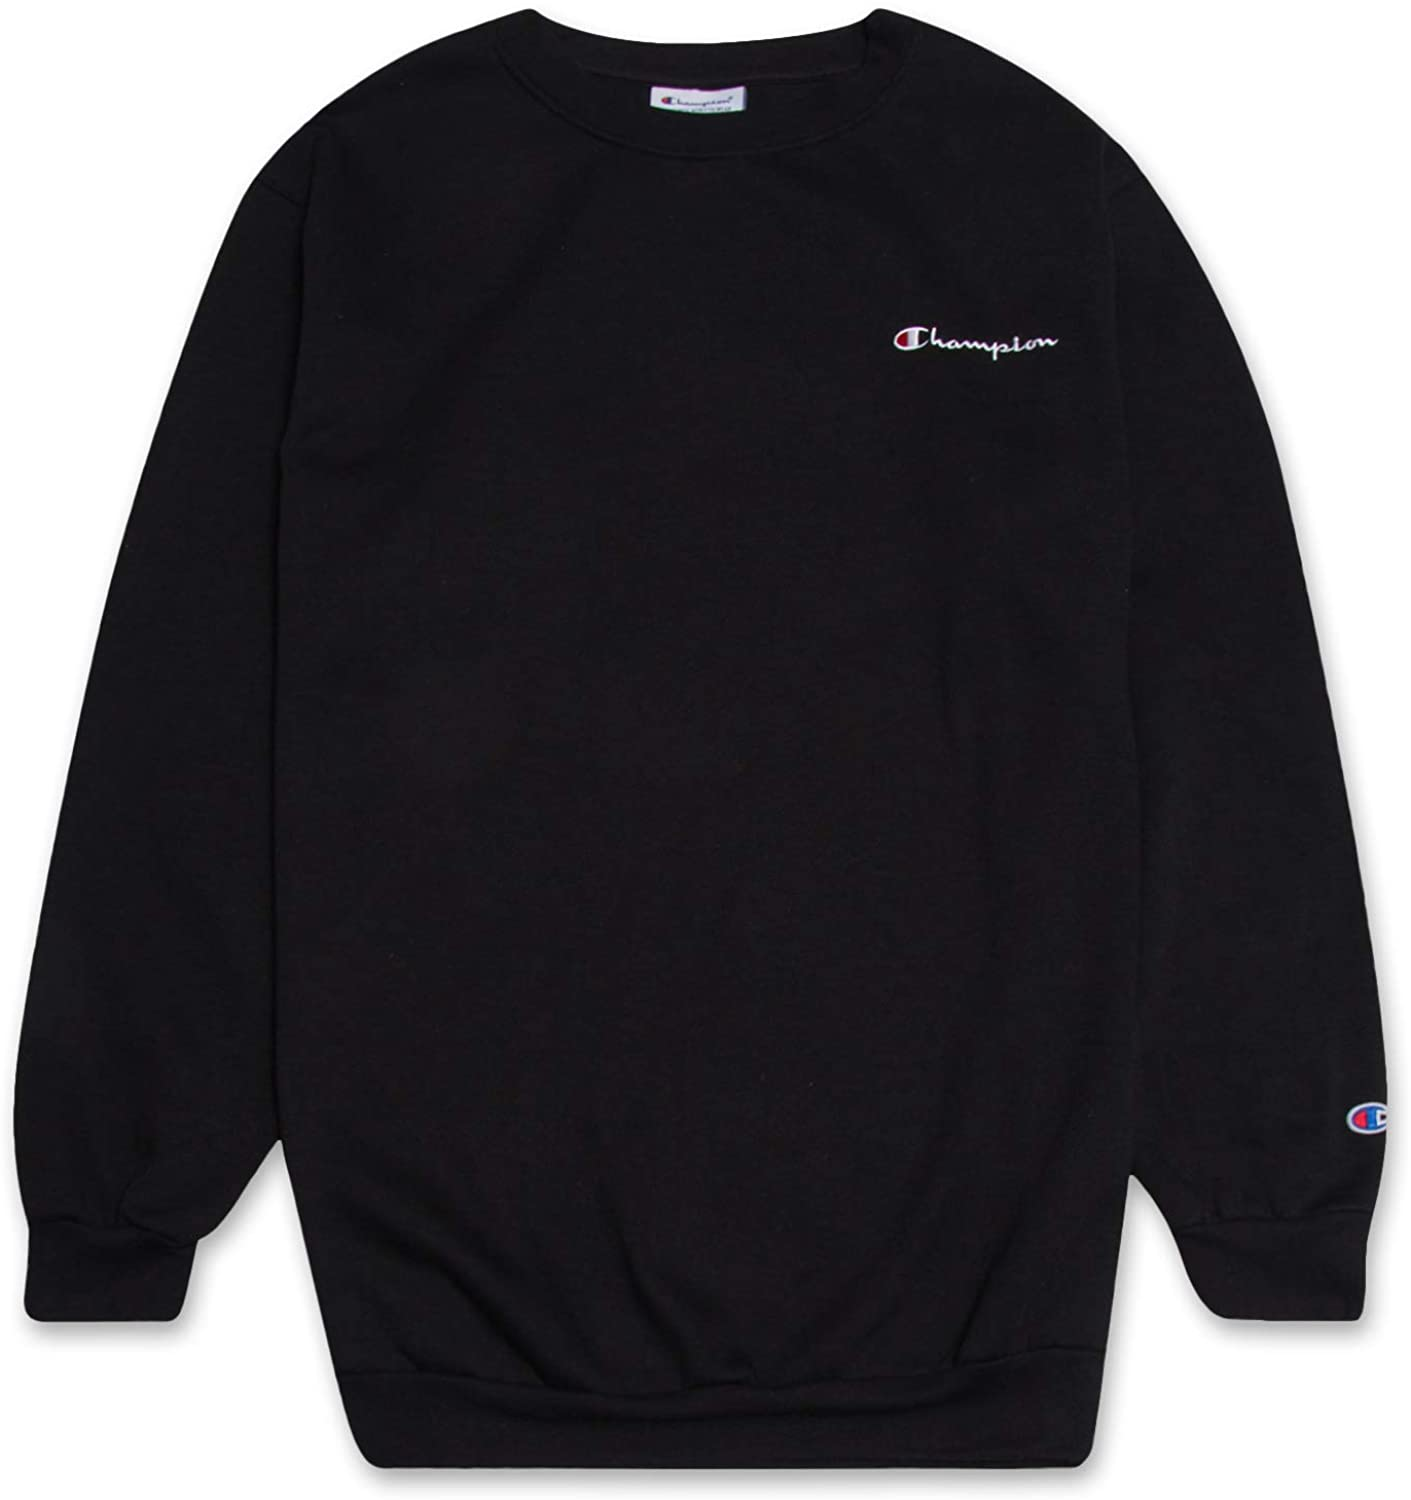 Champion Crewneck Fleece Sweatshirt For Men S Big And Tall With Script Logo At Amazon Men S Clothing Store